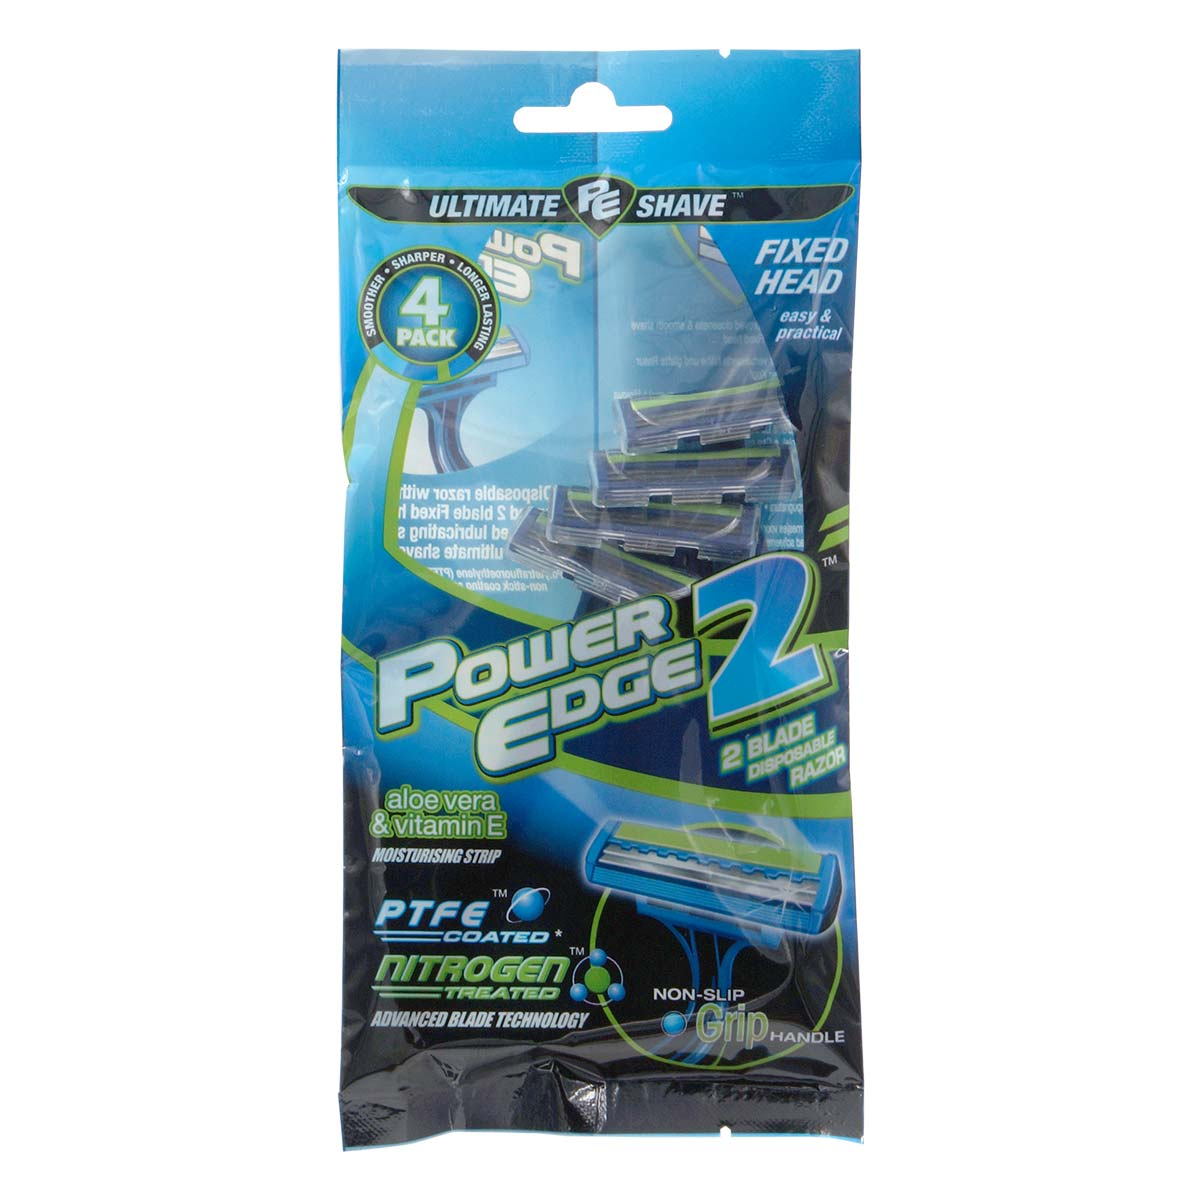 Power Edge 2 Blade Disposable Razor 4's pack